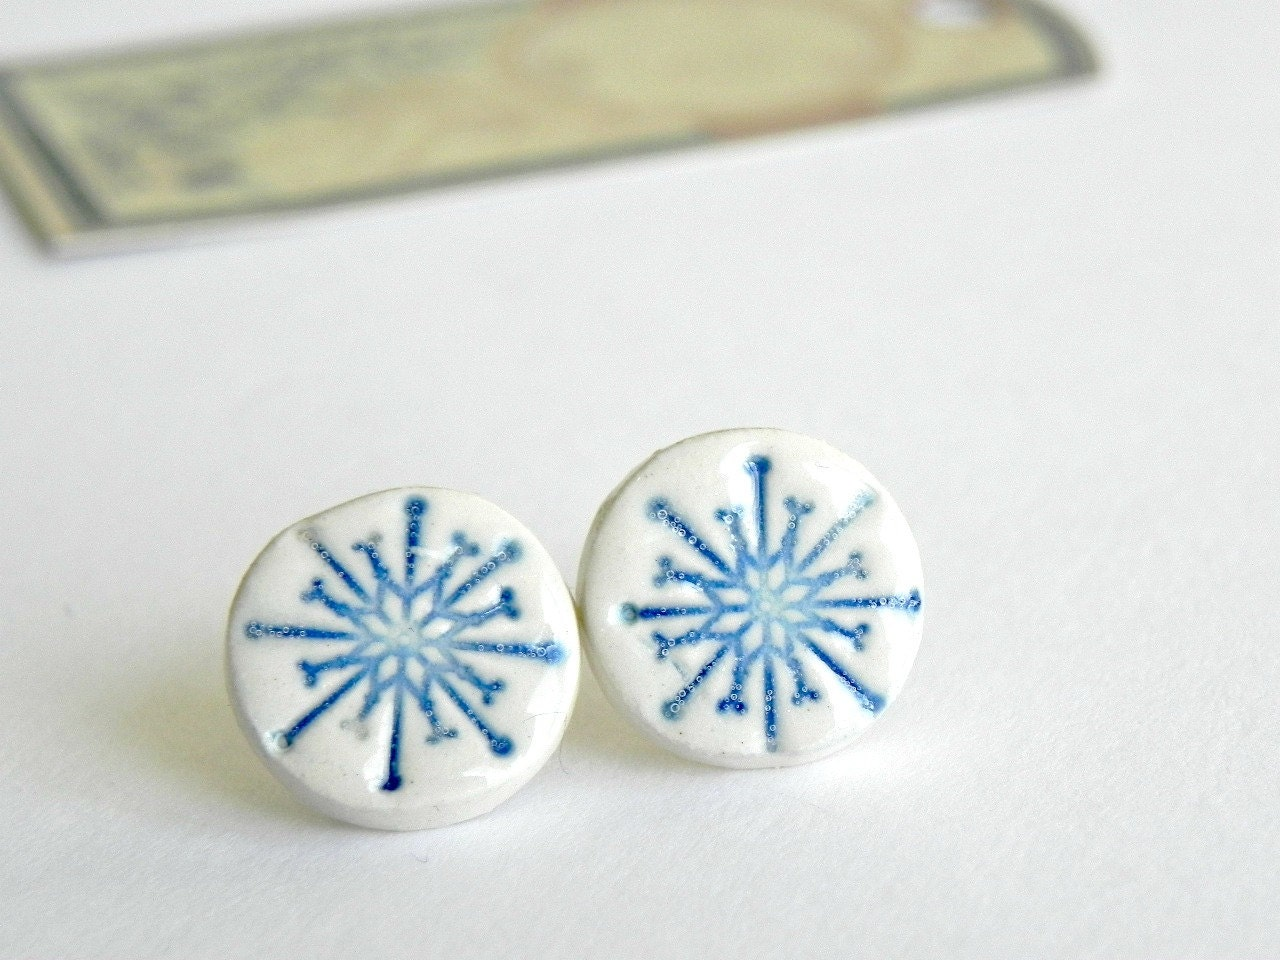 Ceramic Post Earrings Pottery White and Blue Shiny Studs - Ceraminic